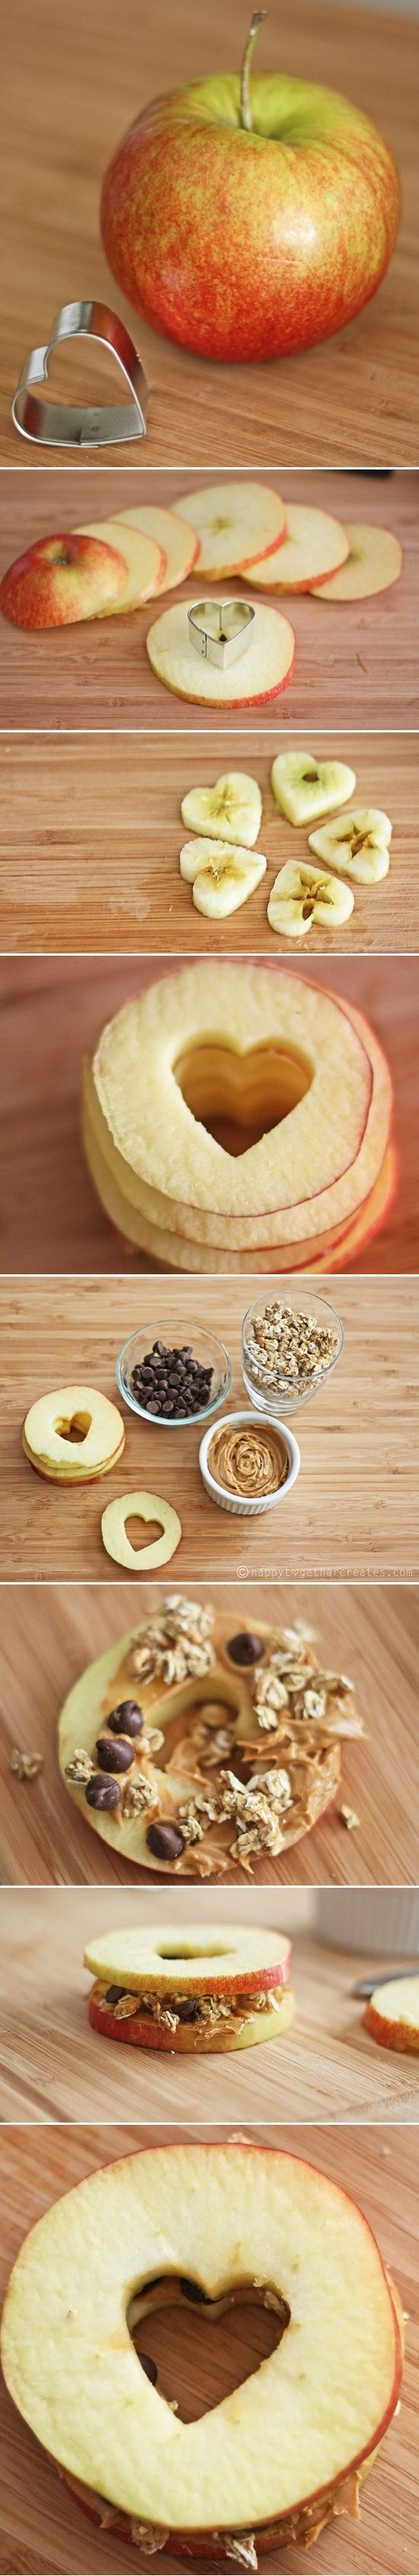 apple heart sandwiches - I love these for a romantic picnic! :)